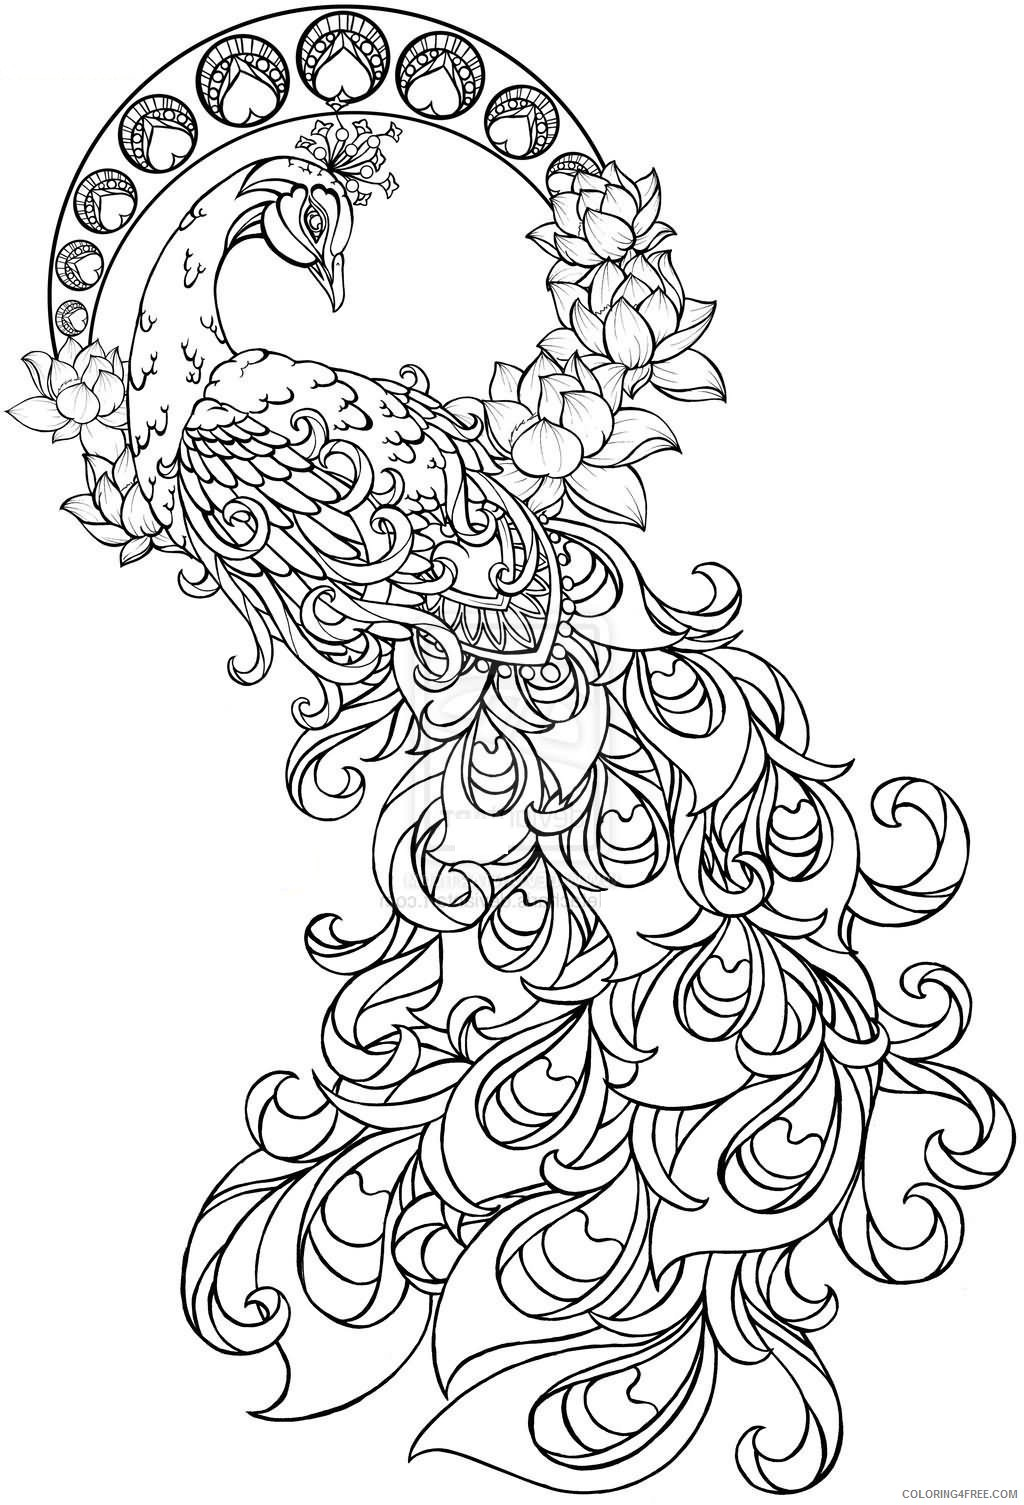 beautiful peacock coloring pages for adults Coloring4free